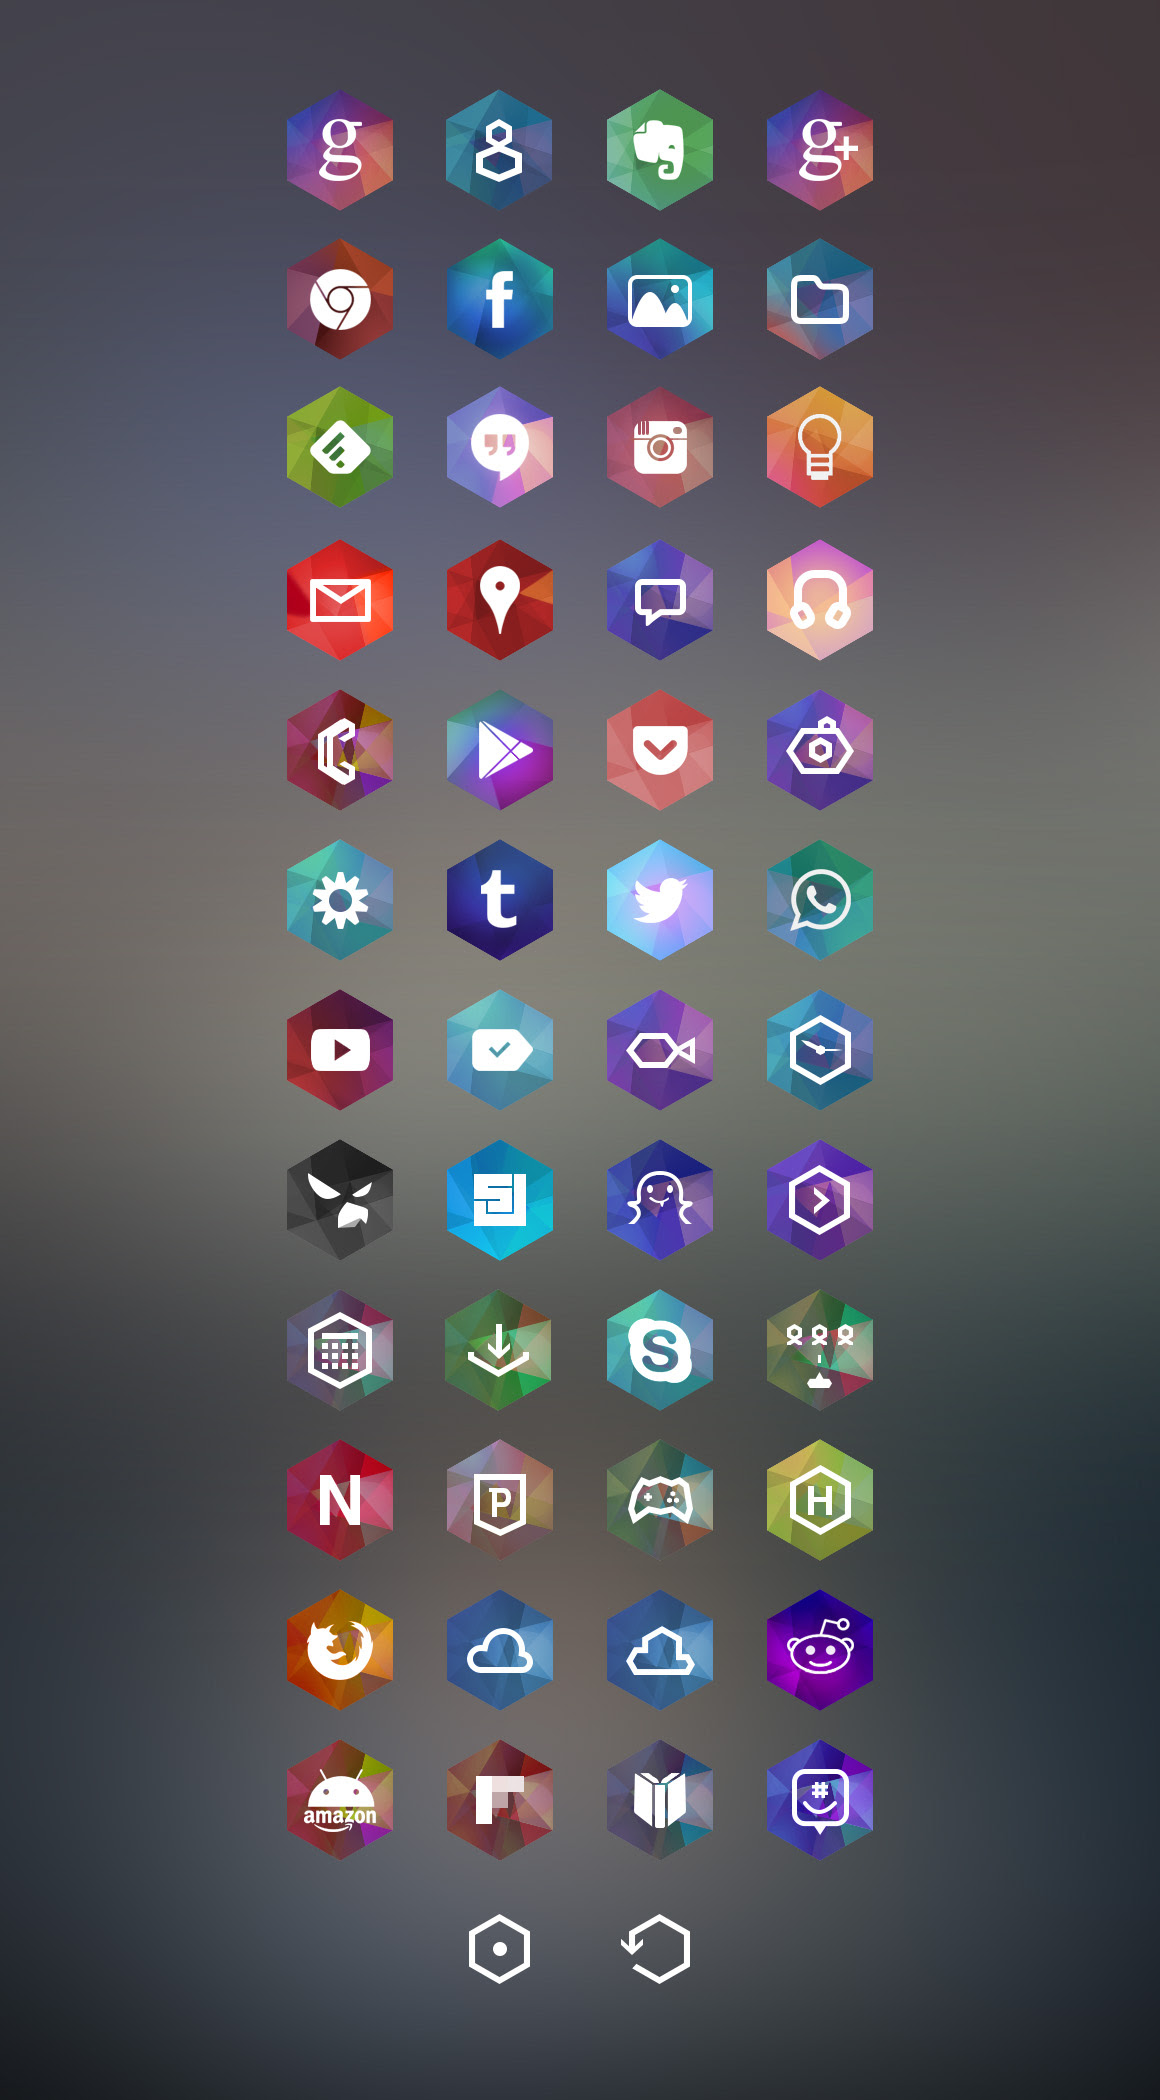 [ICONS] Hexagon Icons  Android Development and Hacking